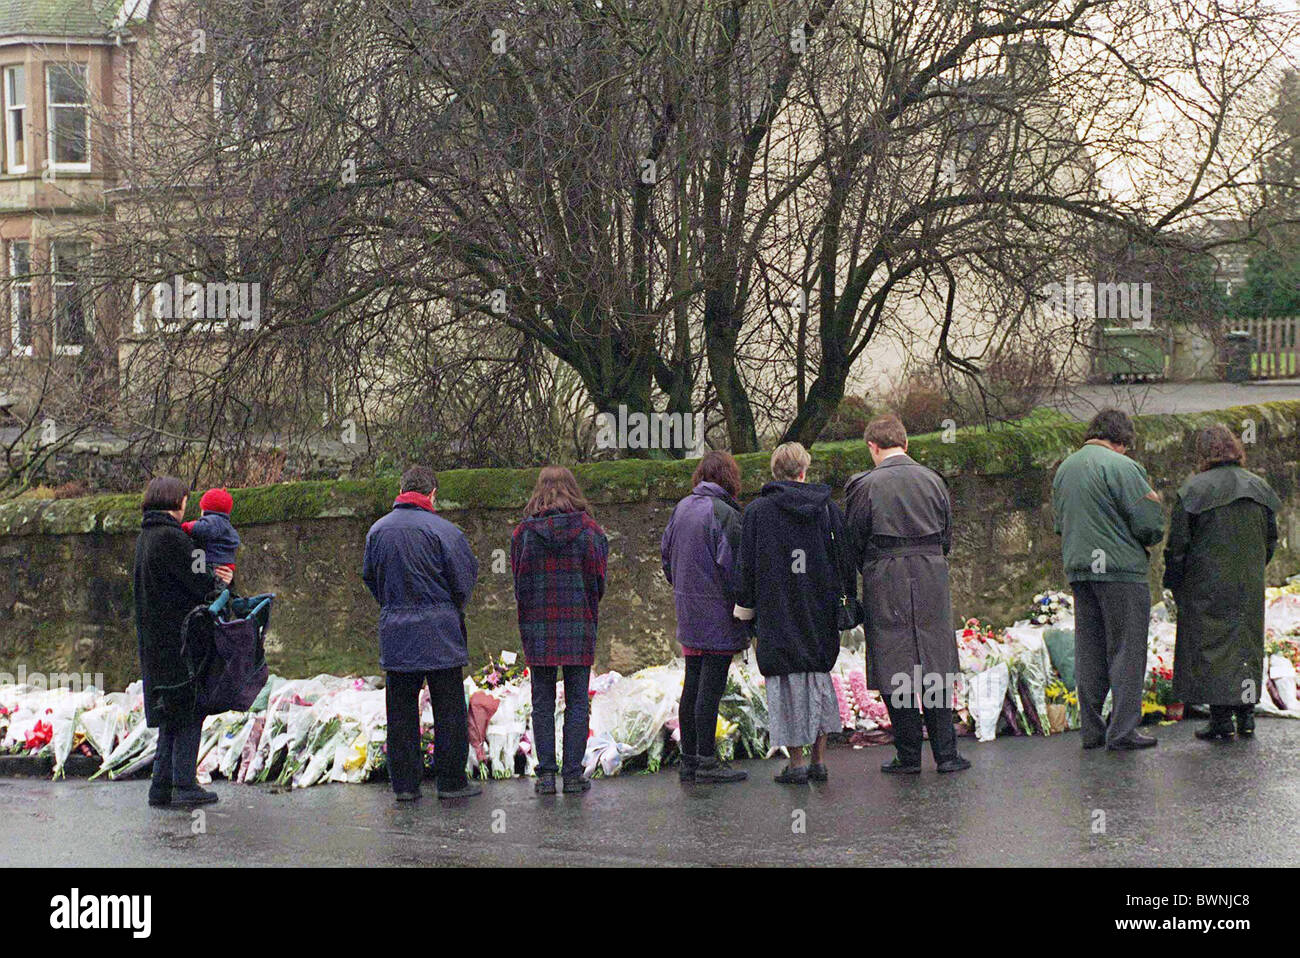 MEMBERS OF THE COMMUNITY MOURN THE DEATHS OF 16 CHILDREN AND THEIR TEACHER AT DUNBLANE PRIMARY SCHOOL IN SCOTLAND. - Stock Image